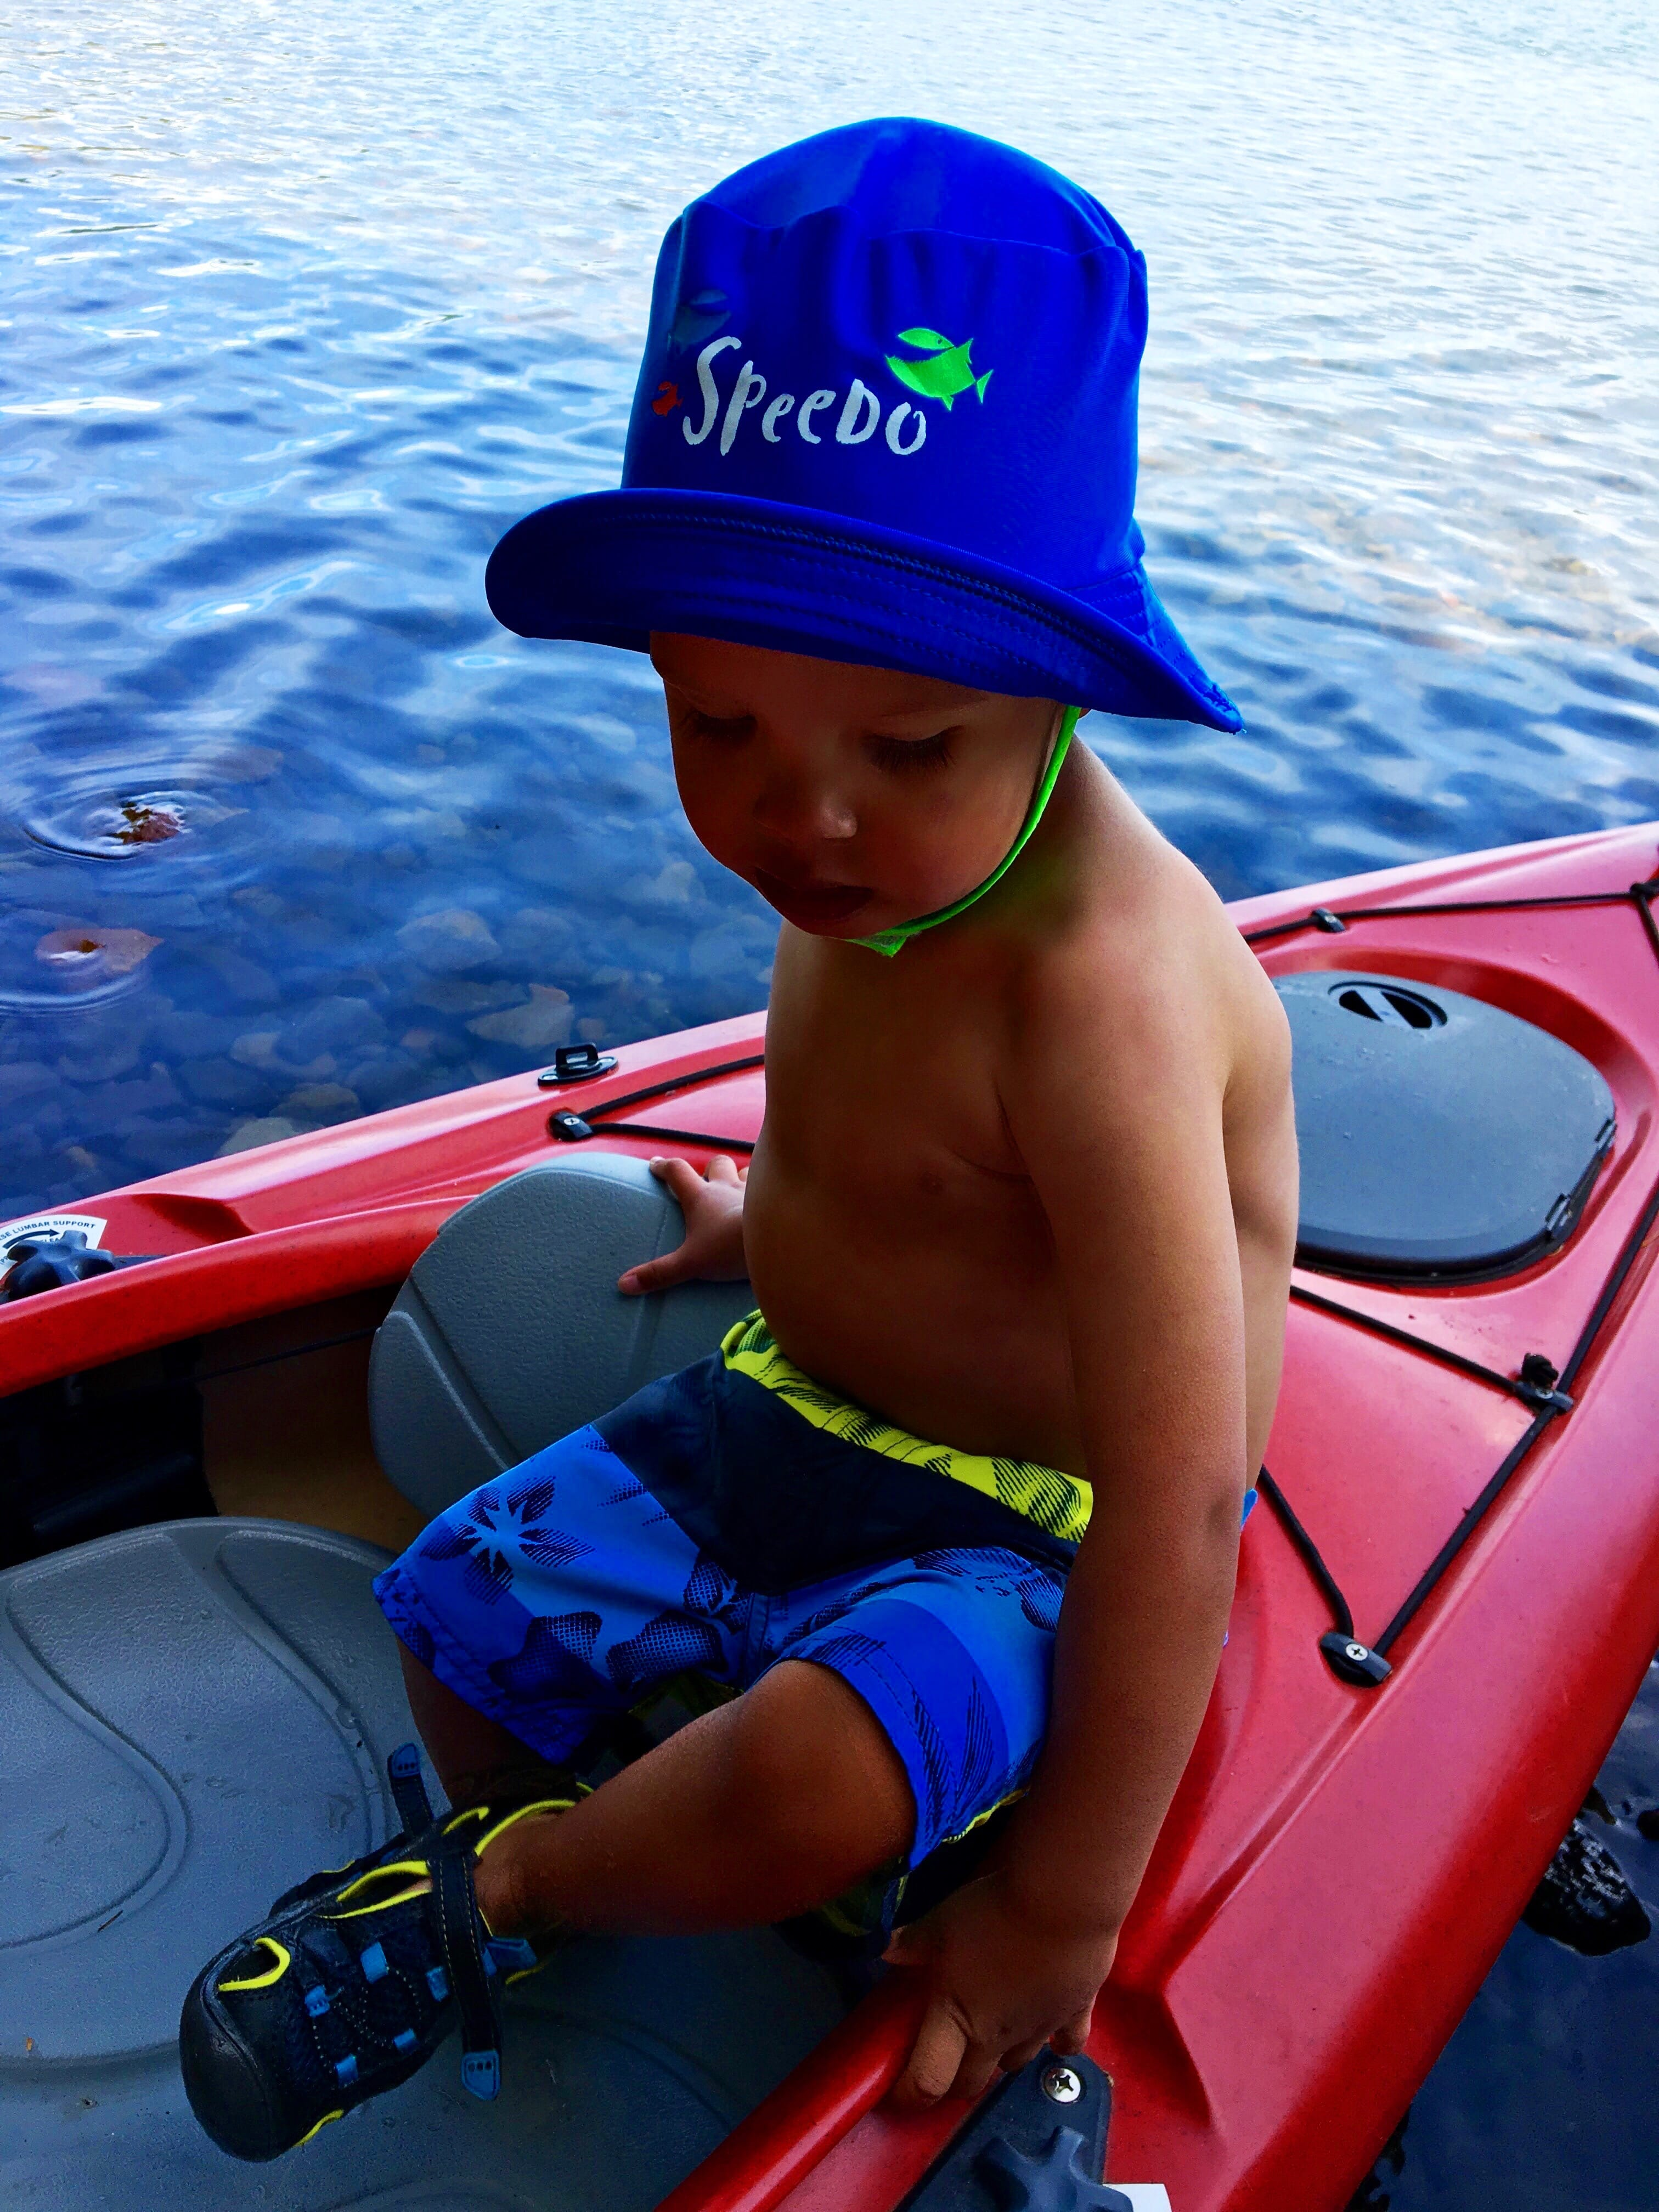 Chase at Odell - Speedo Hat